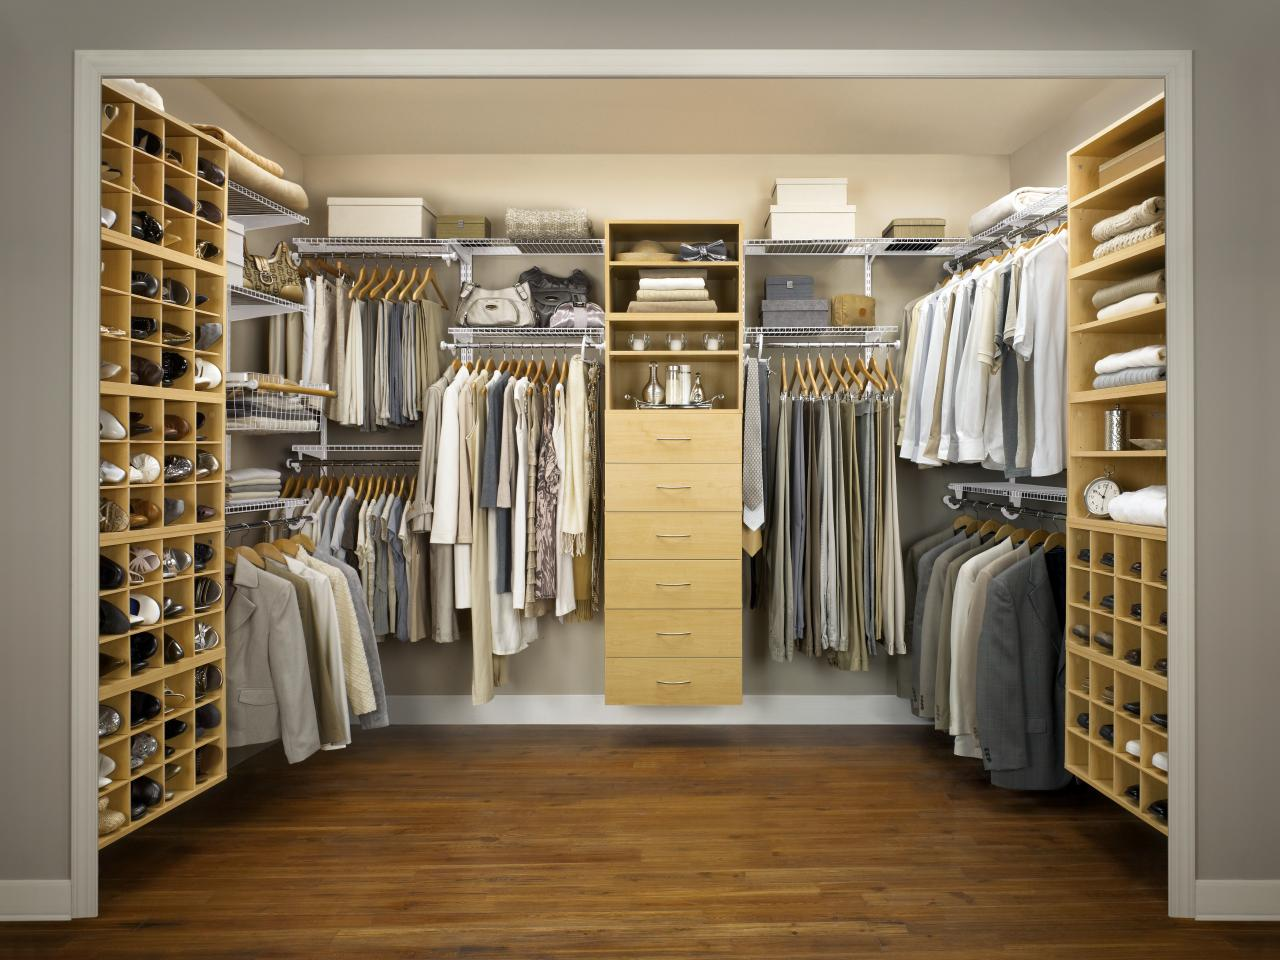 spacious serenity the distinctive characteristic of this master closet - Master Bedroom Closet Design Ideas